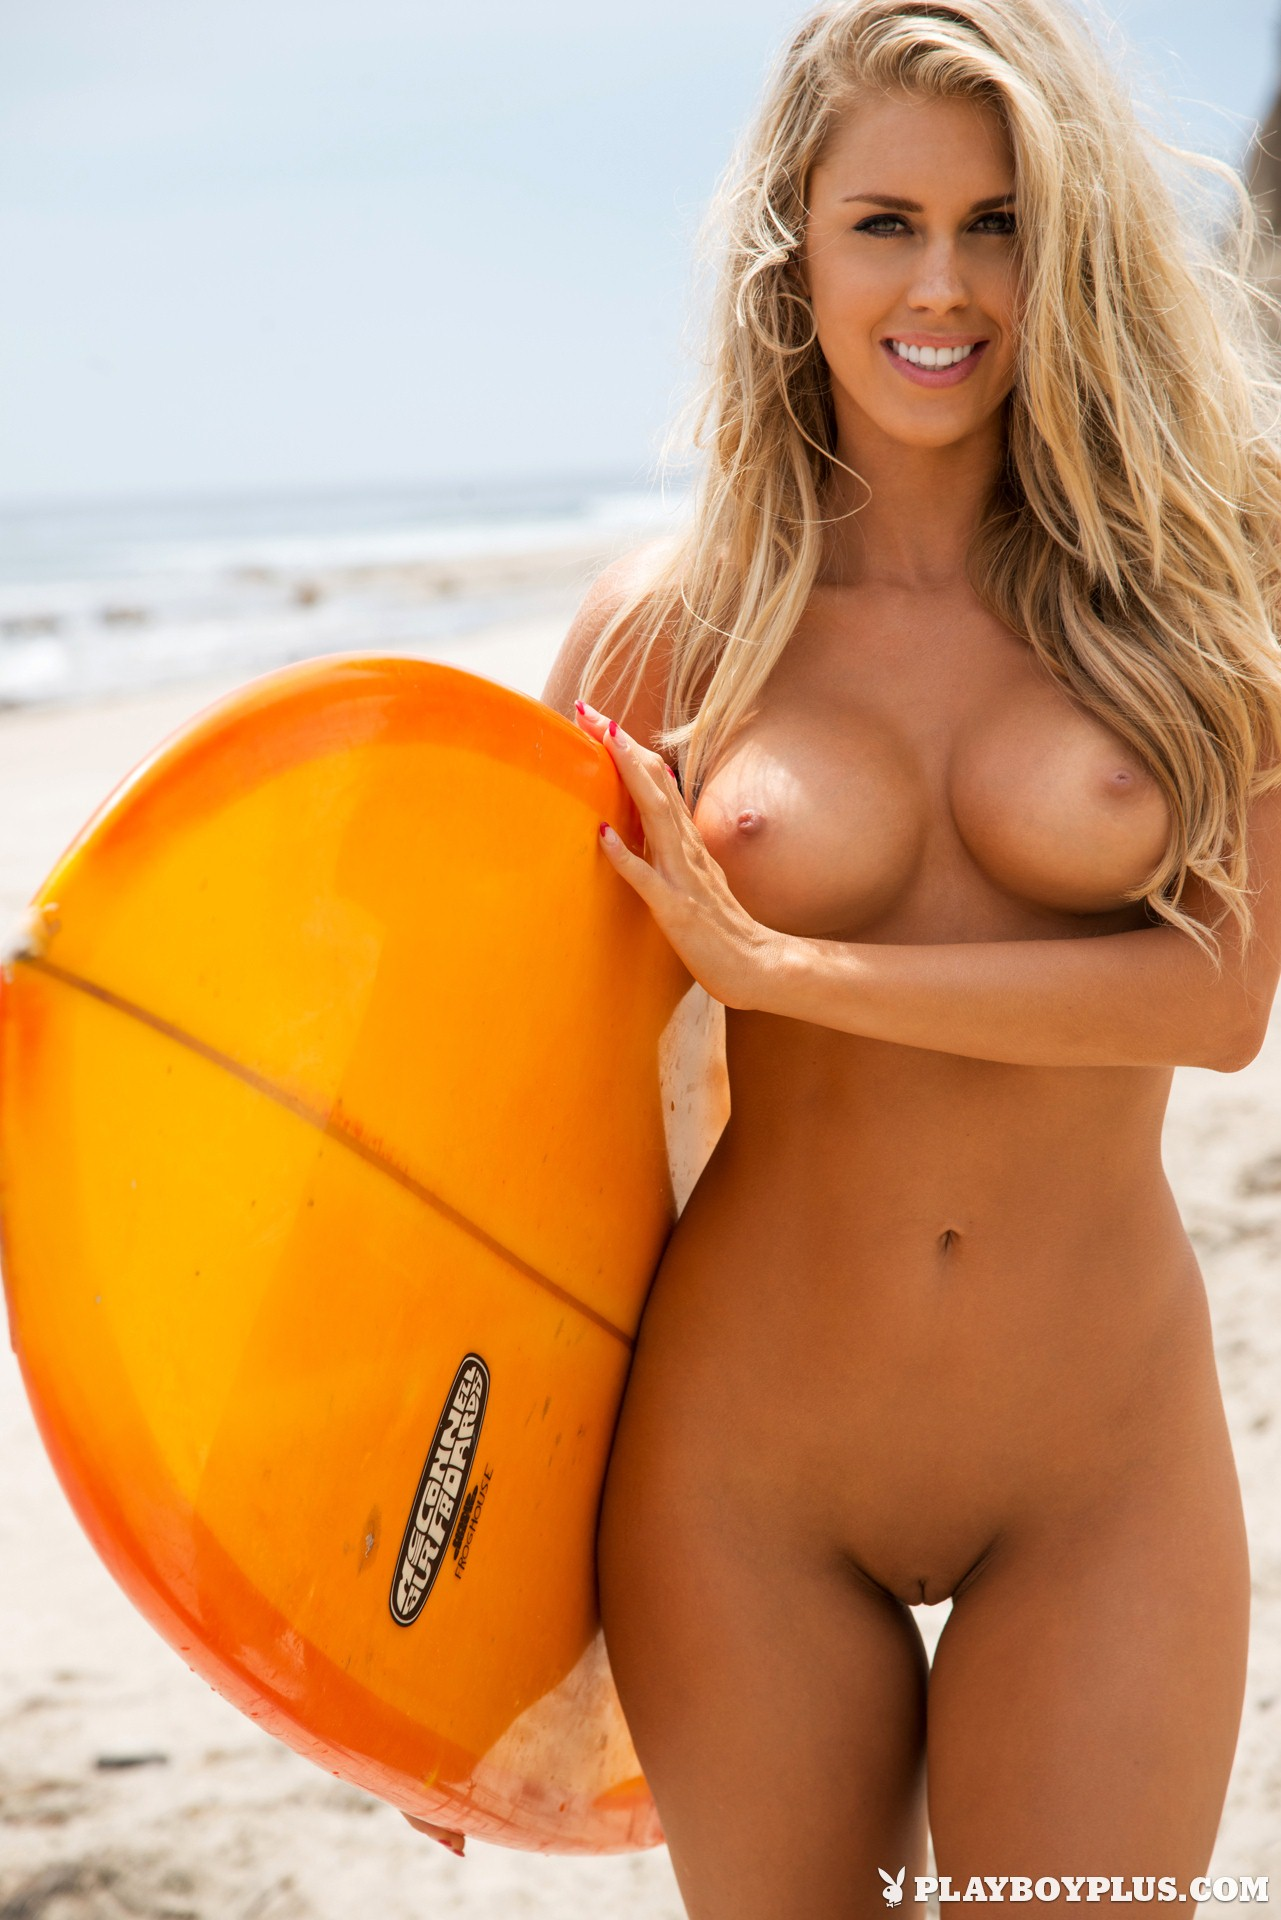 Surfer girl surfing